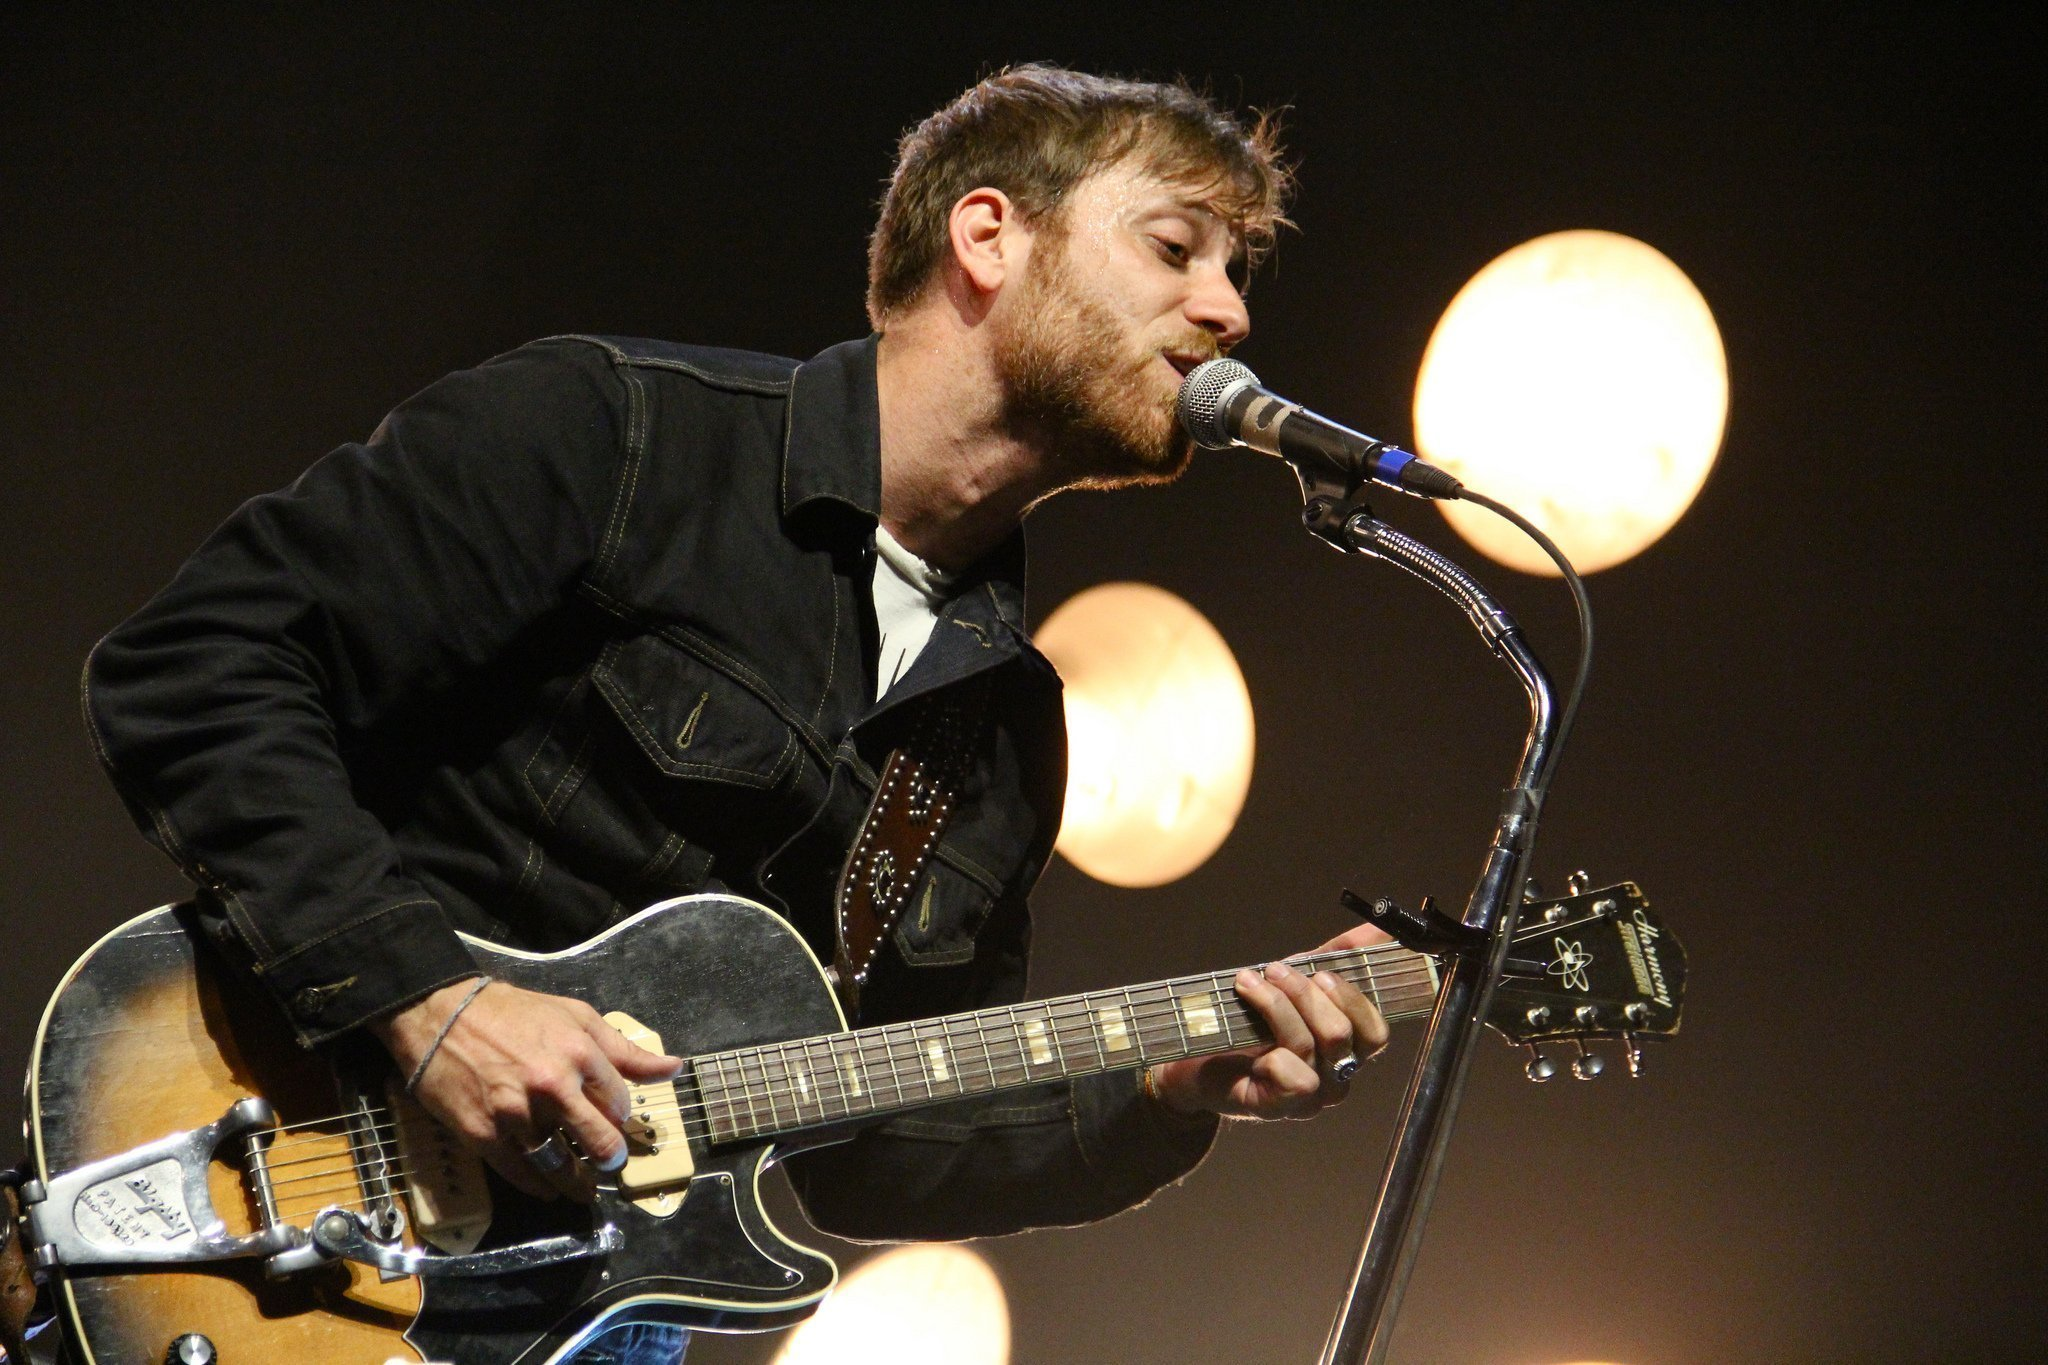 dan auerbach dating lana del rey The black keys frontman dan auerbach has revealed to nme that he will not feature on lana del rey's new album auerbach teamed up with.